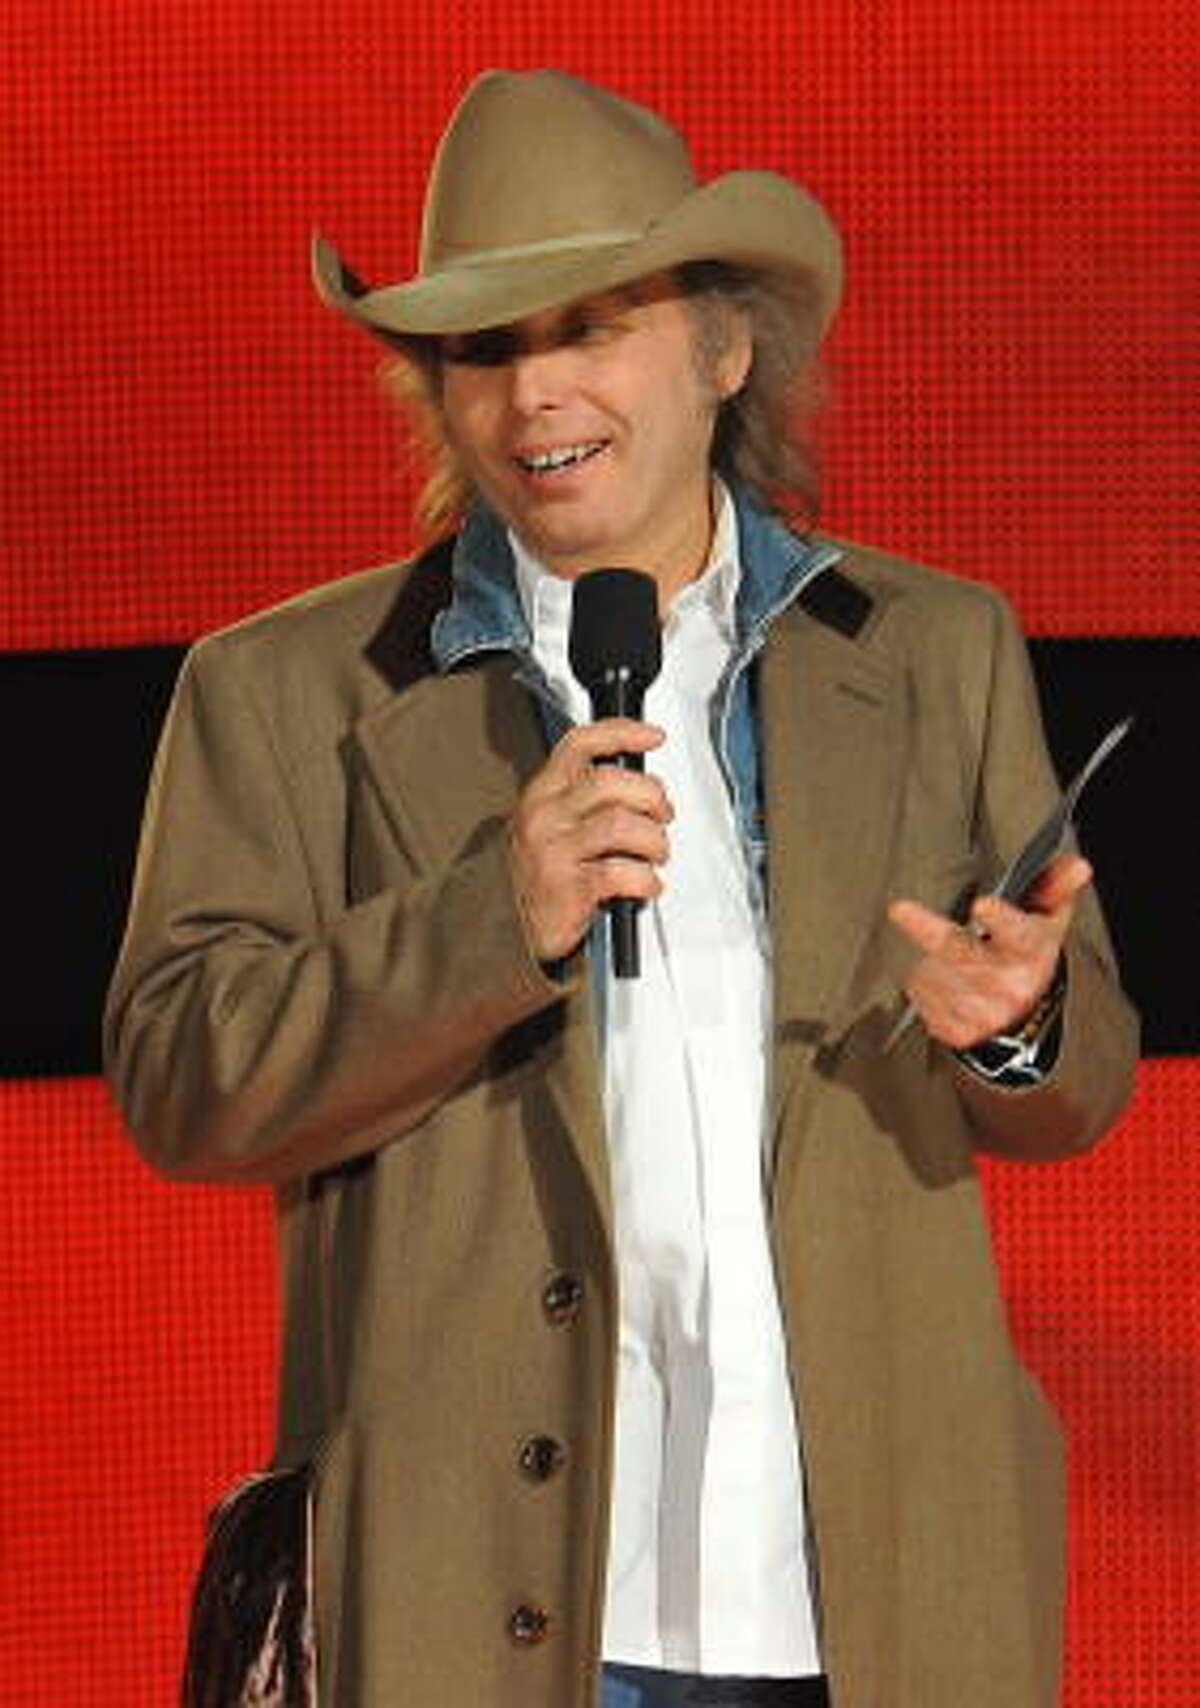 Dwight Yoakam announced the nominees in the Best Country Performance by a Duo or Group with Vocals category. The nominees included Brooks & Dunn, Zac Brown Band, Lady Antebellum, Rascal Flatts and Sugarland.